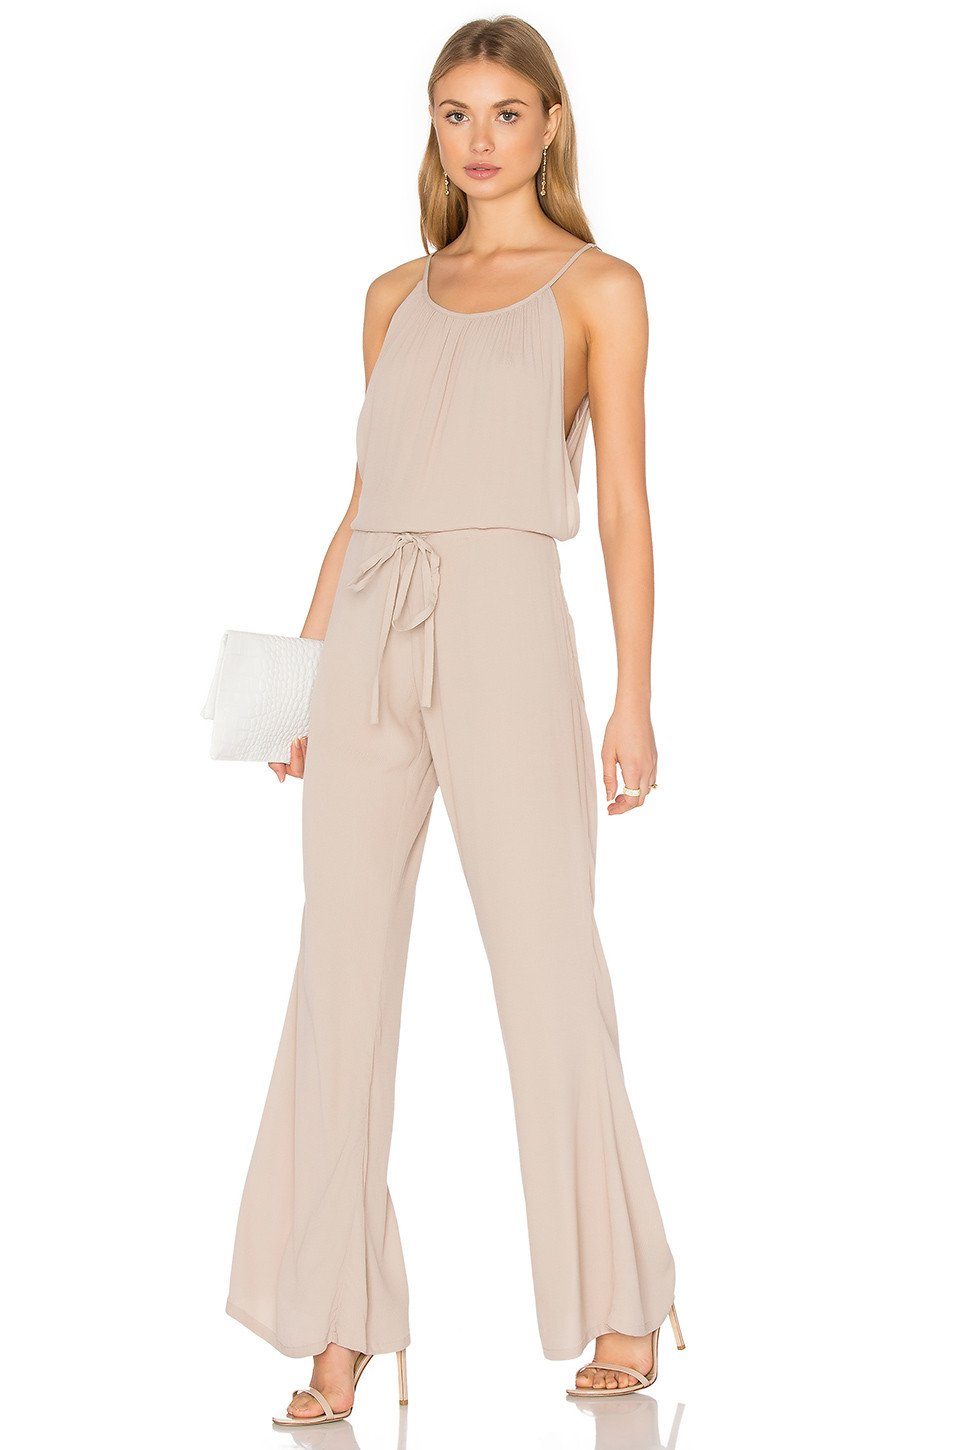 Beige Jumpsuit - Kustom Label - 1